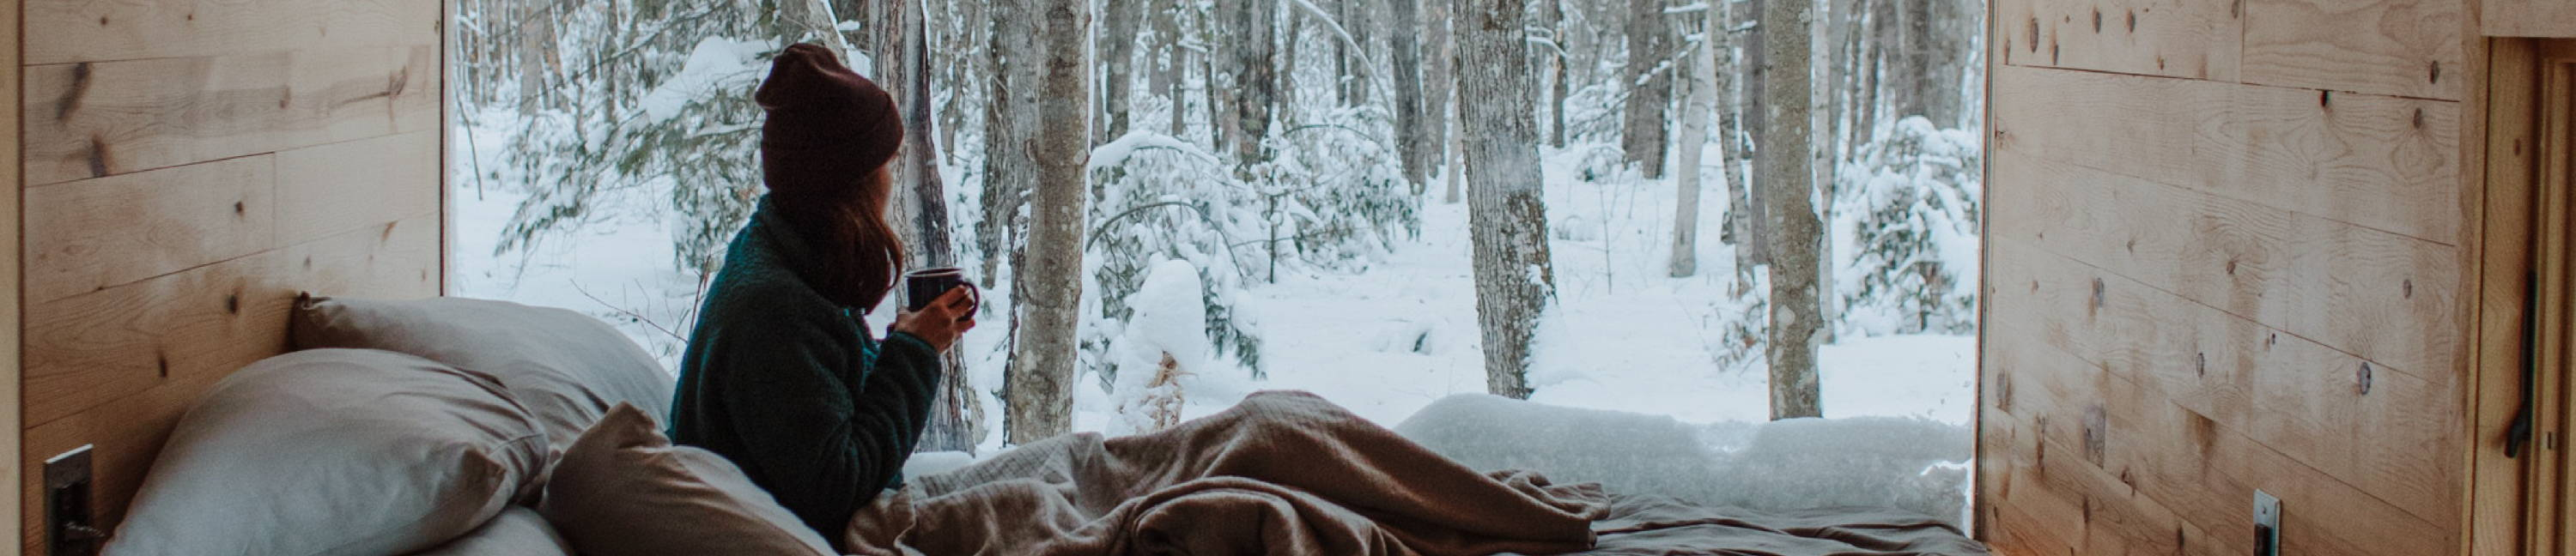 woman sipping coffee in bed looking at snow